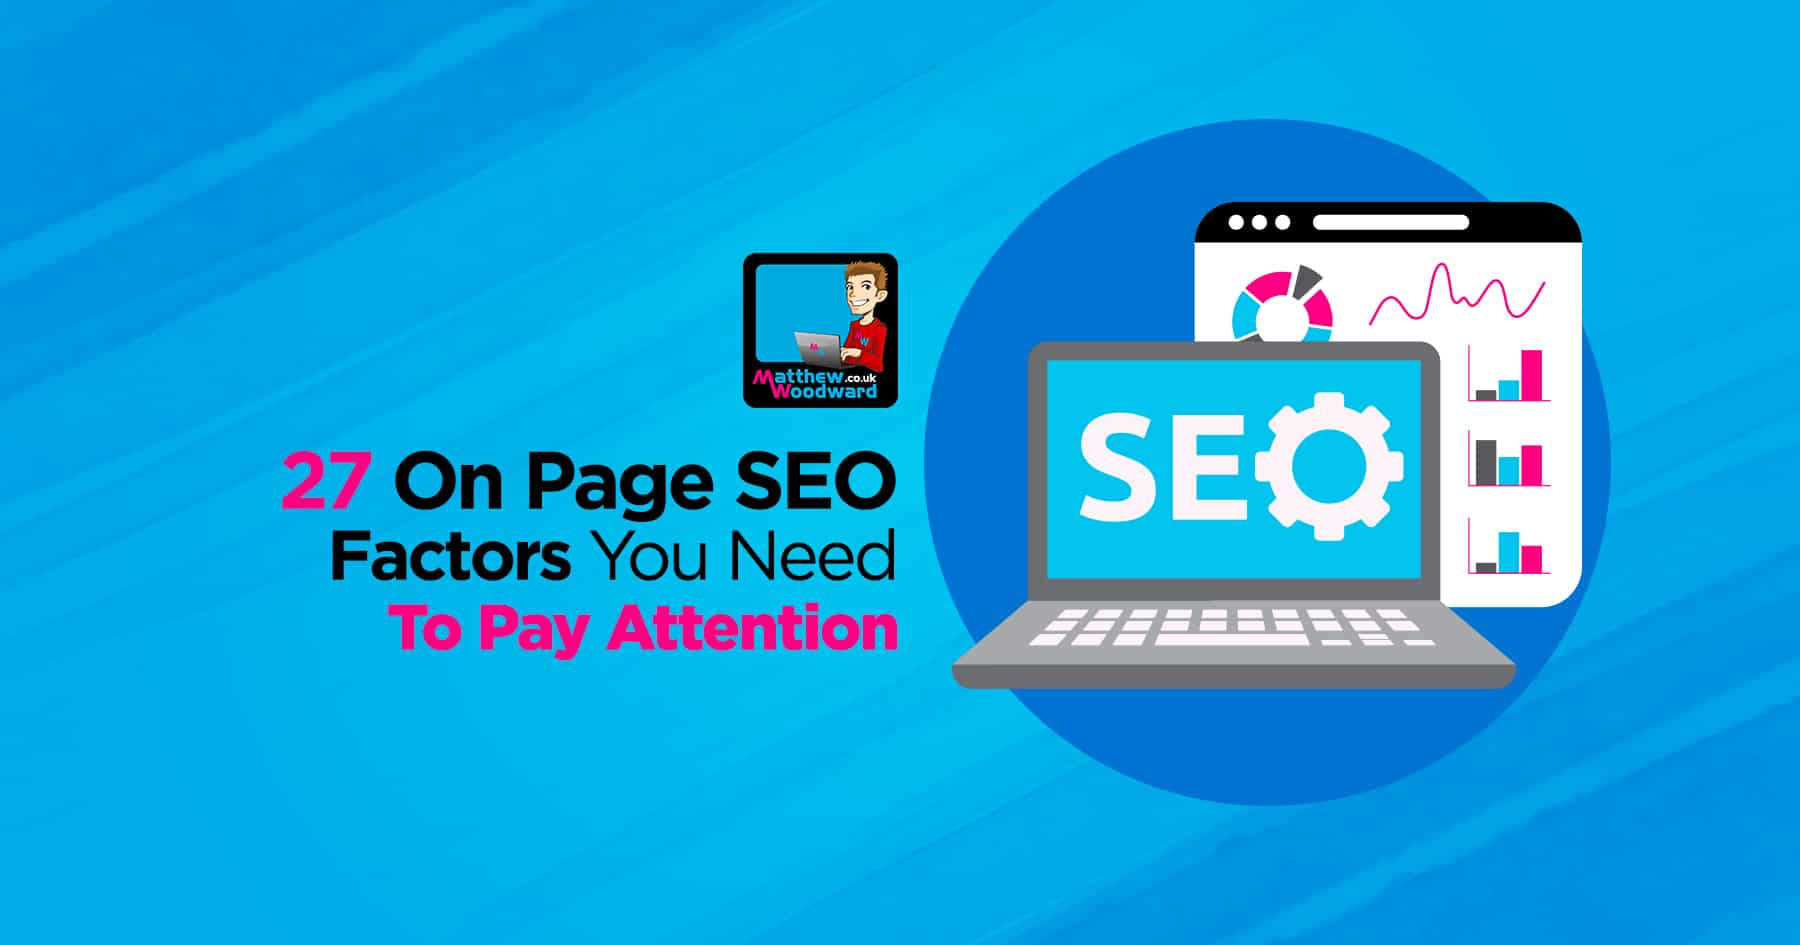 Use This On Page SEO Checklist To Increase Search Traffic